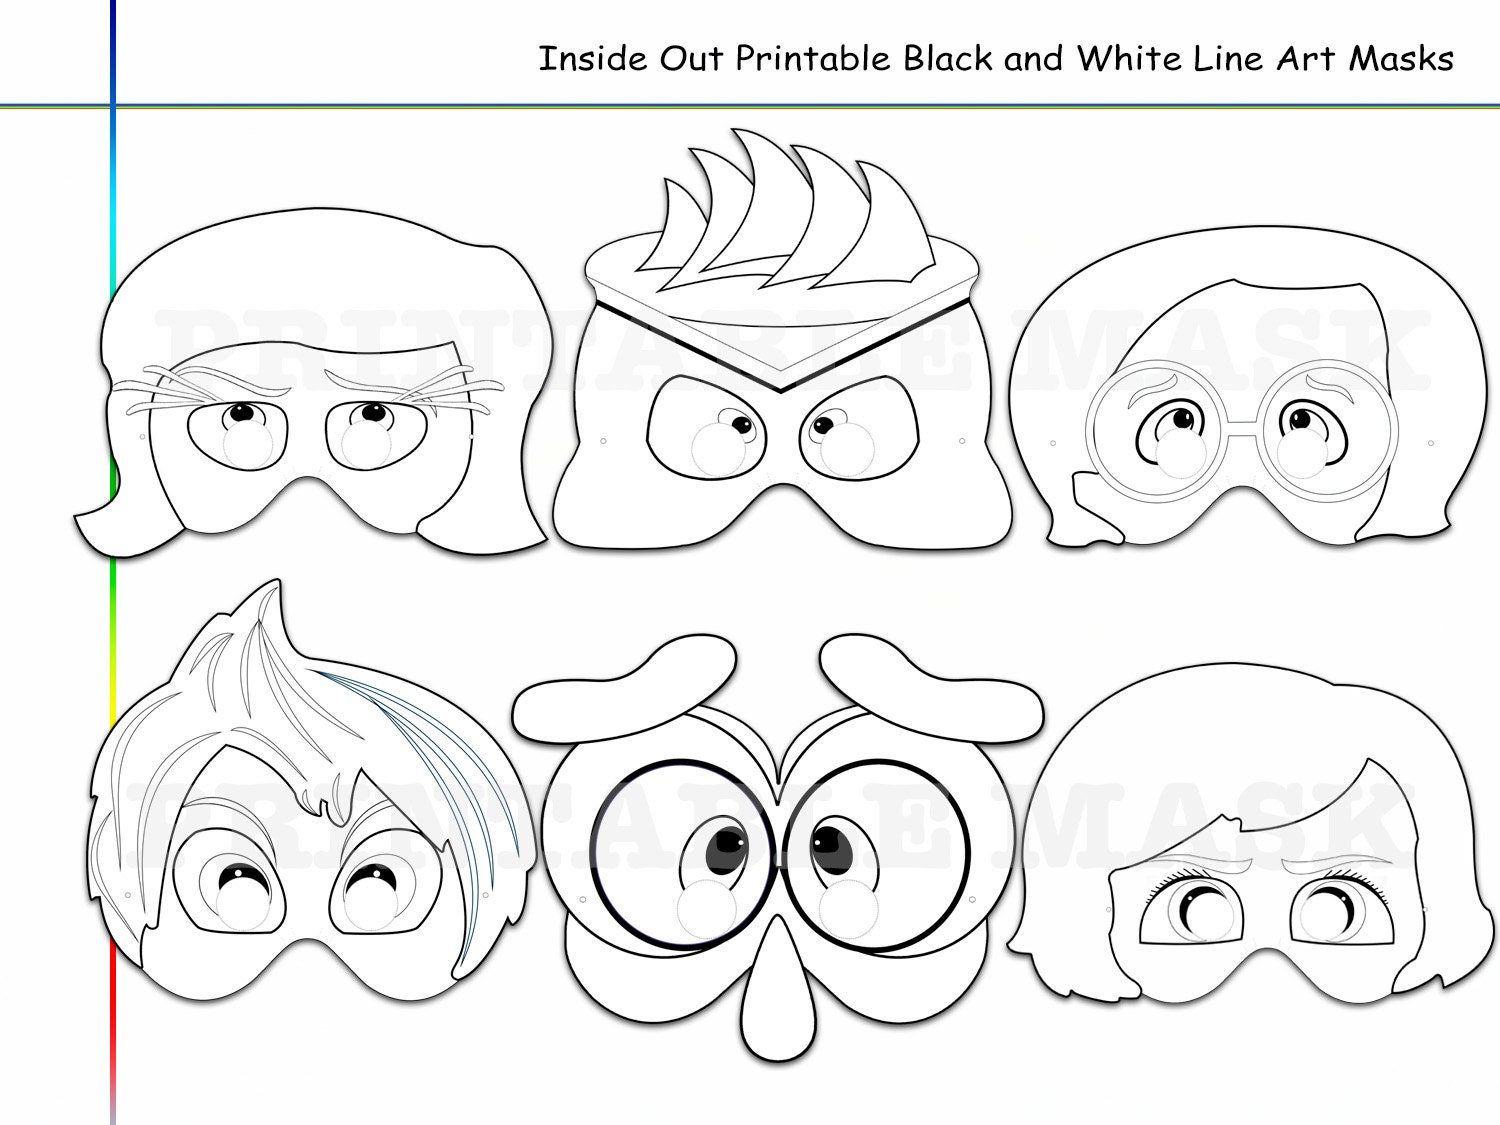 Inside Out Coloring Pages Pdf : Coloring pages inside out printable black and white line art